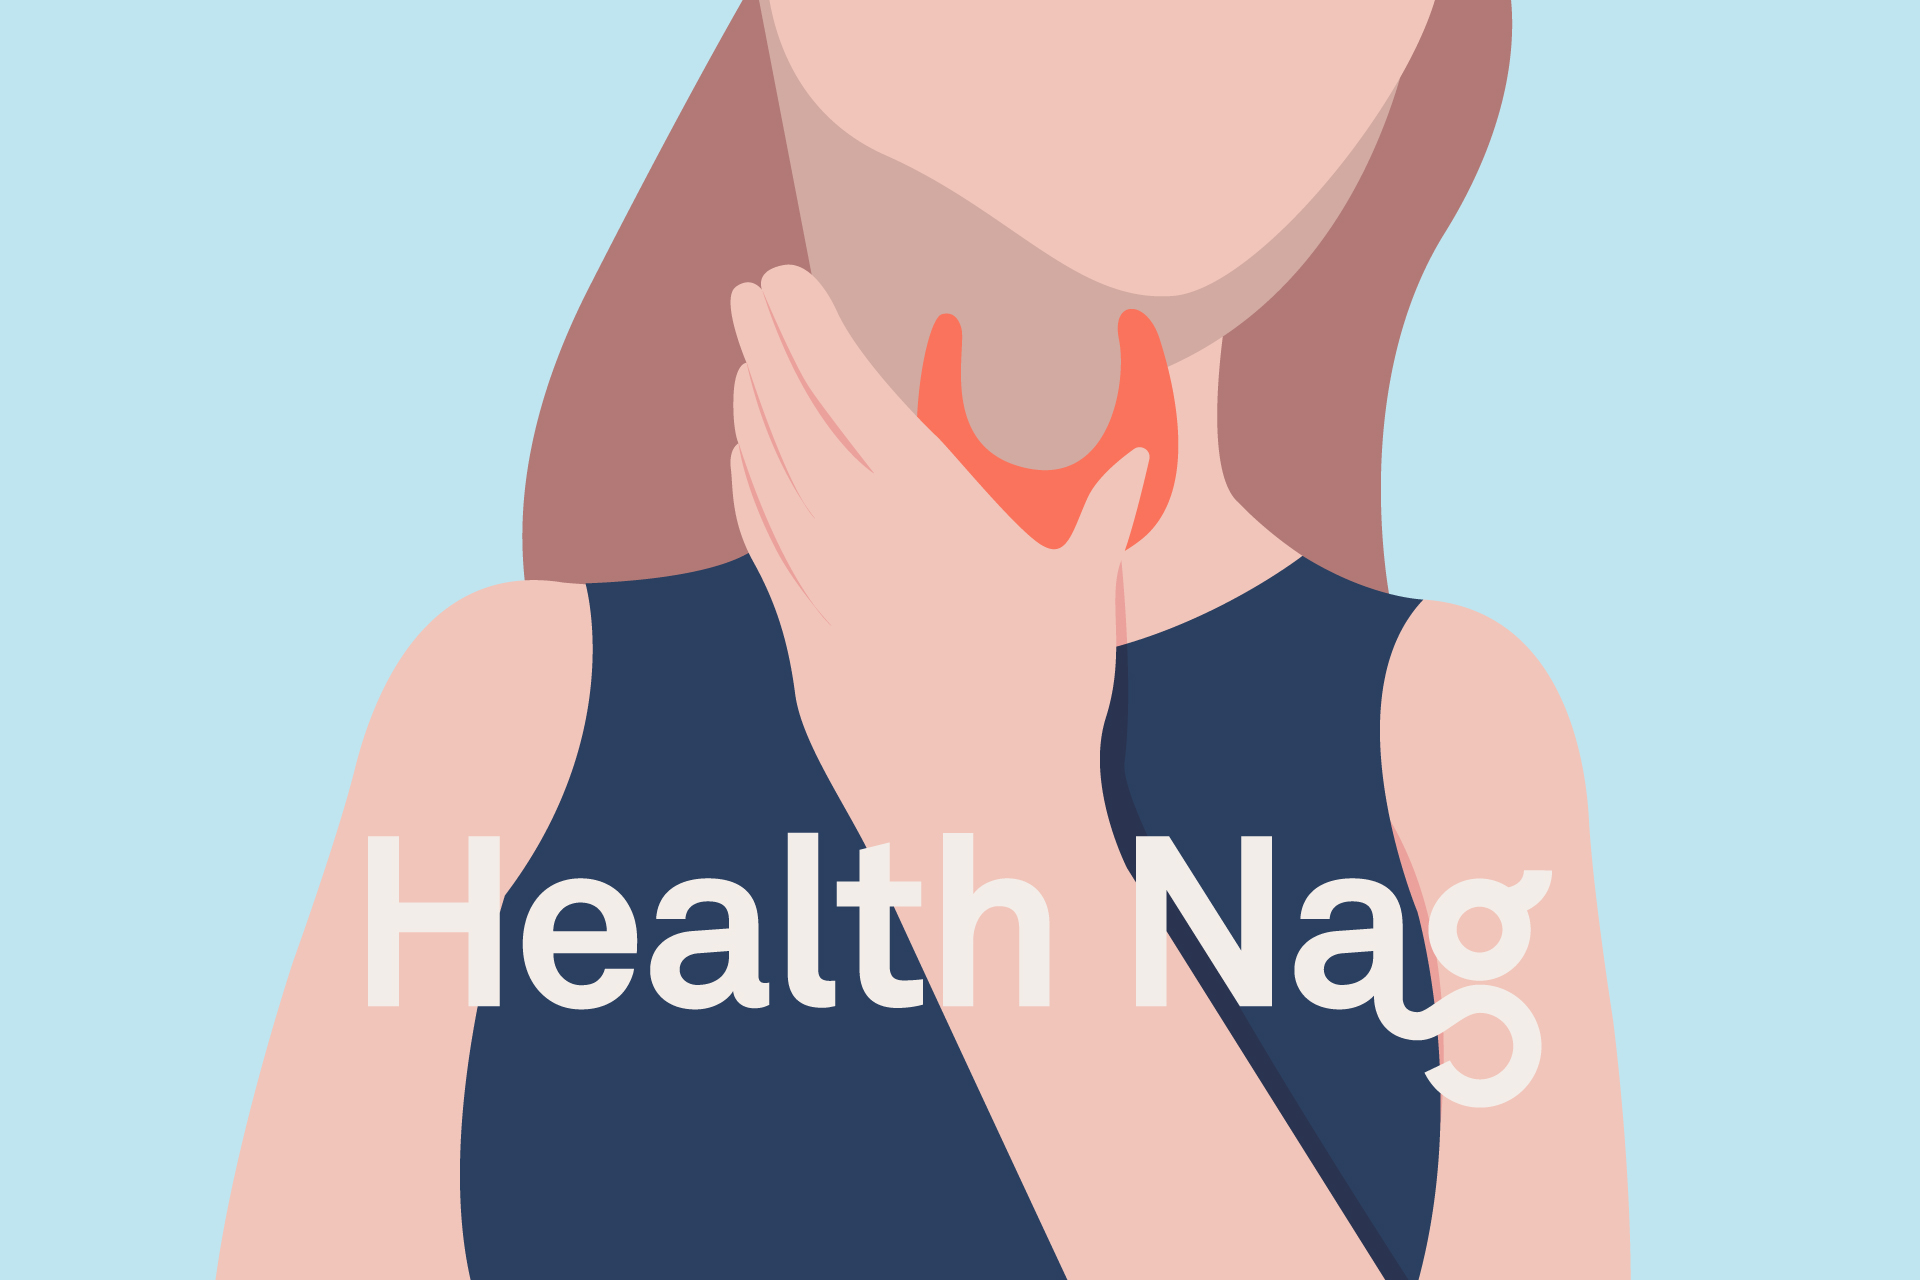 Health Nag instagram content illustration